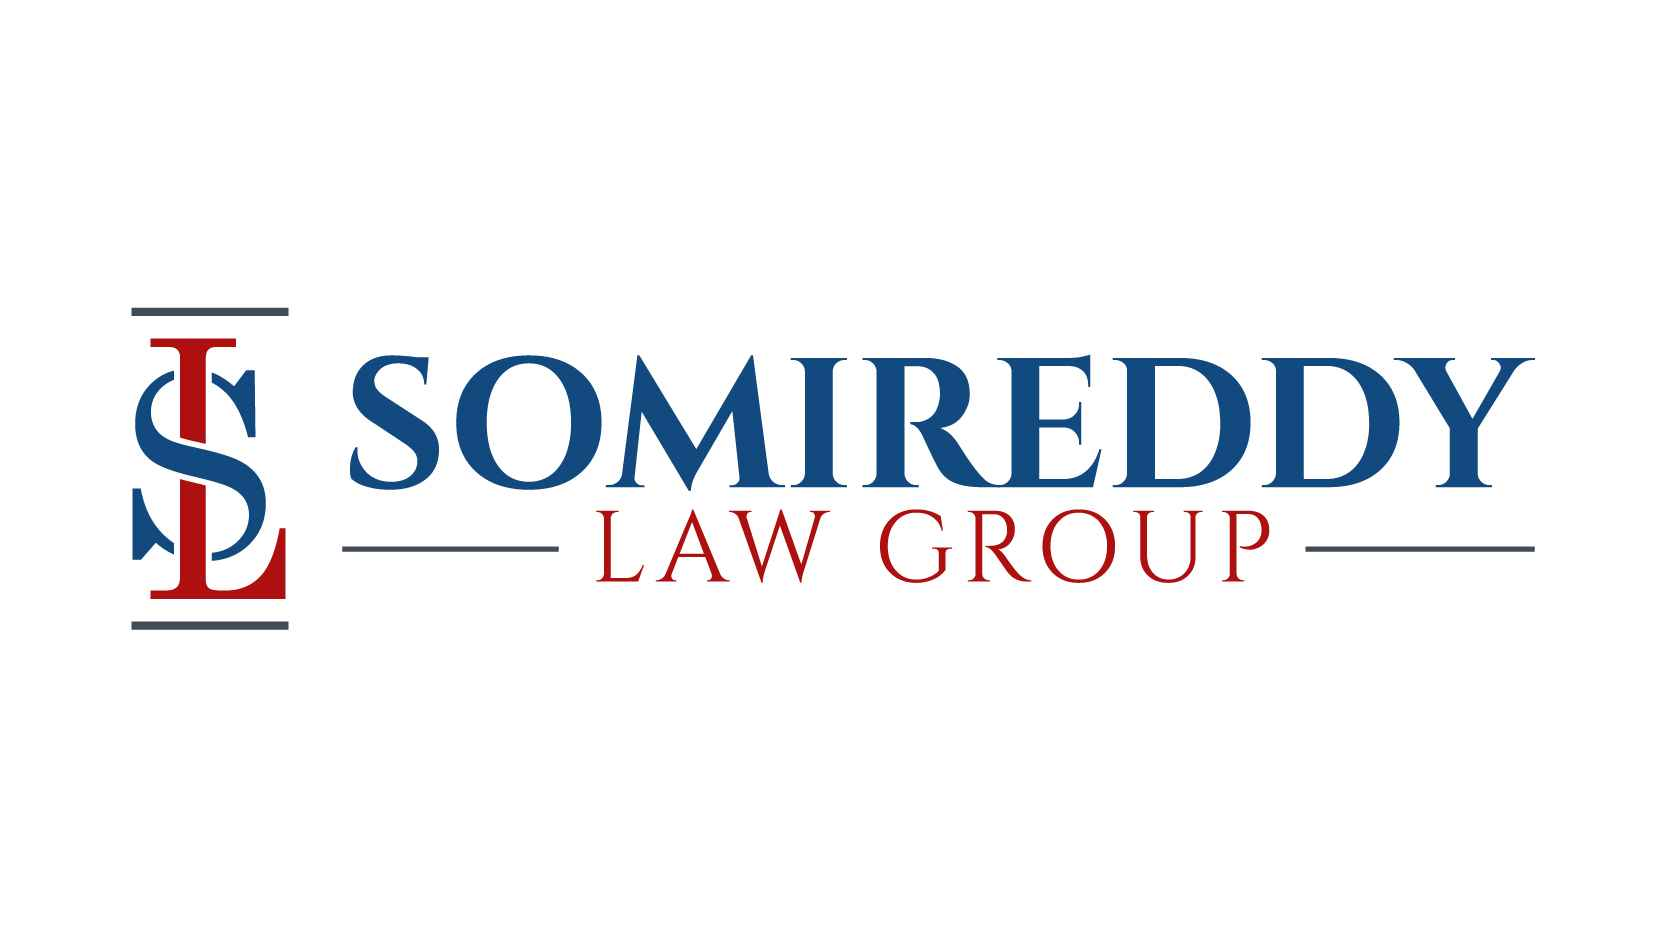 SOMIREDDY LAW GROUP (SLG) @ VA